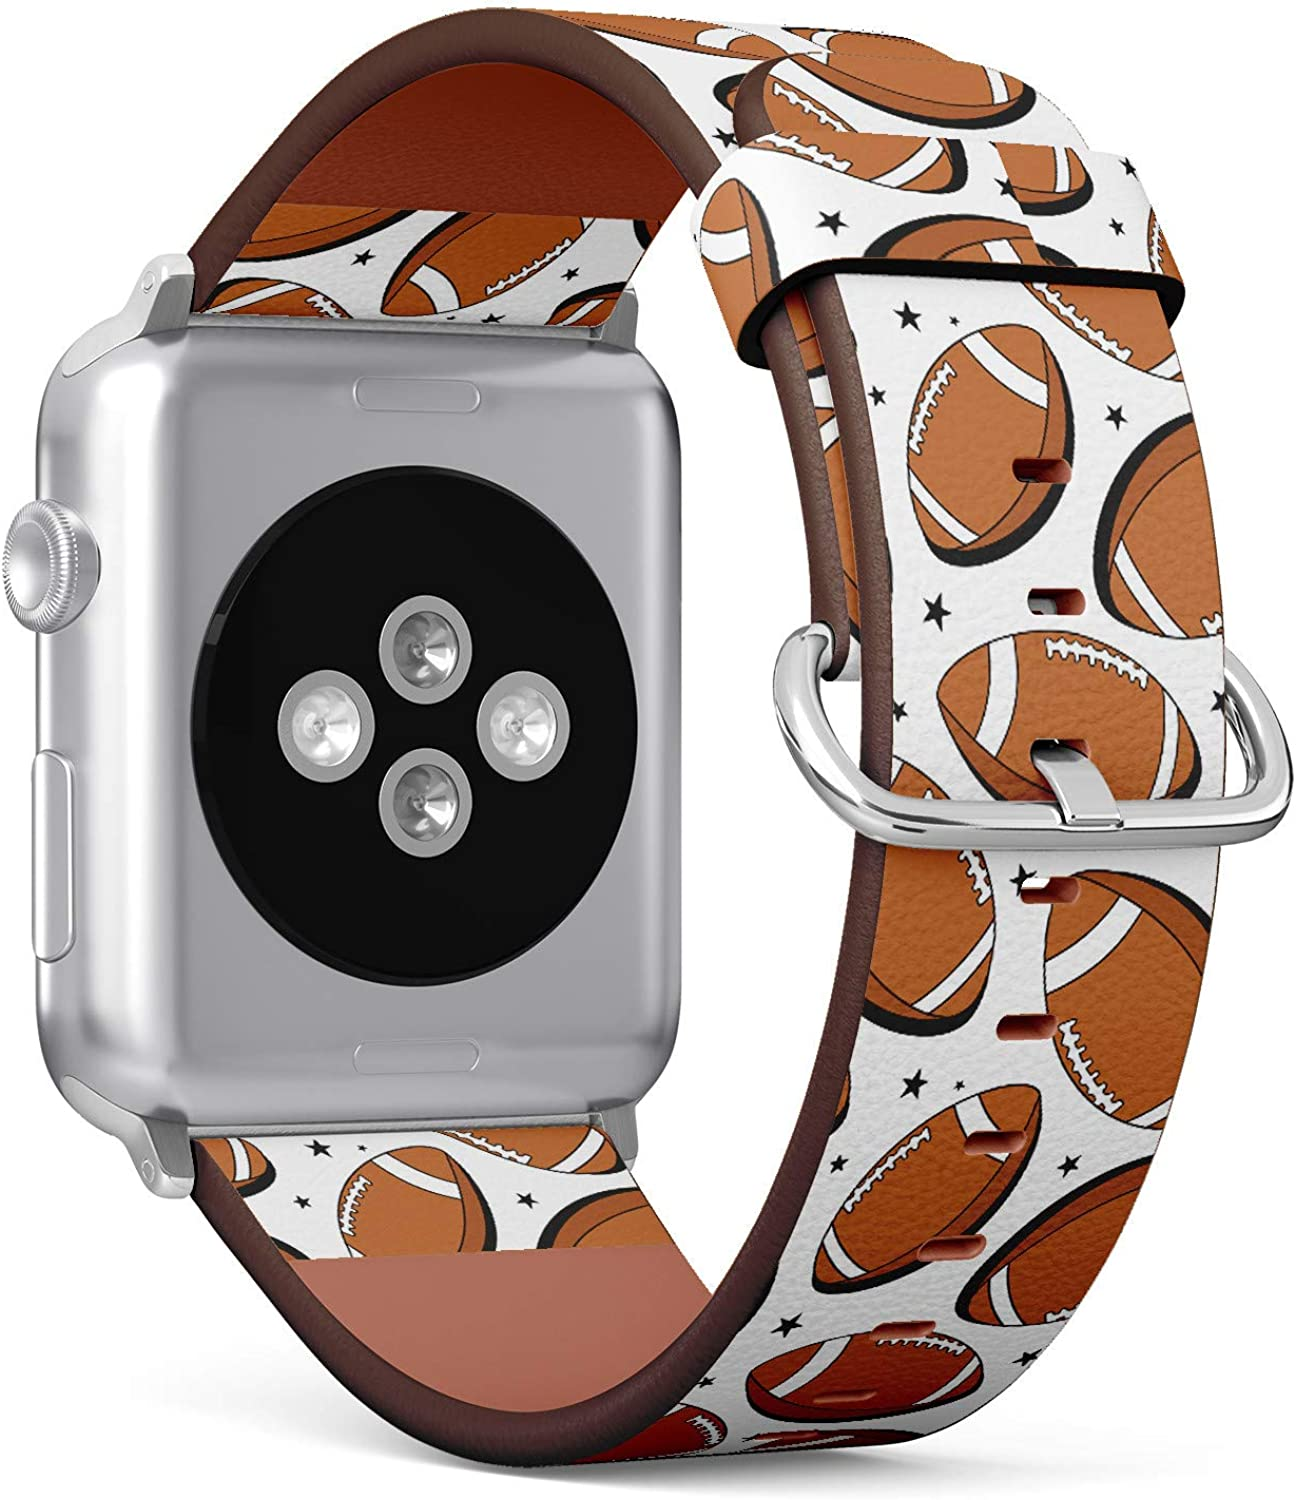 American Football and Stars Pattern - Patterned Leather Wristband Strap Compatible with Apple Watch Series 4/3/2/1 38mm/40mm